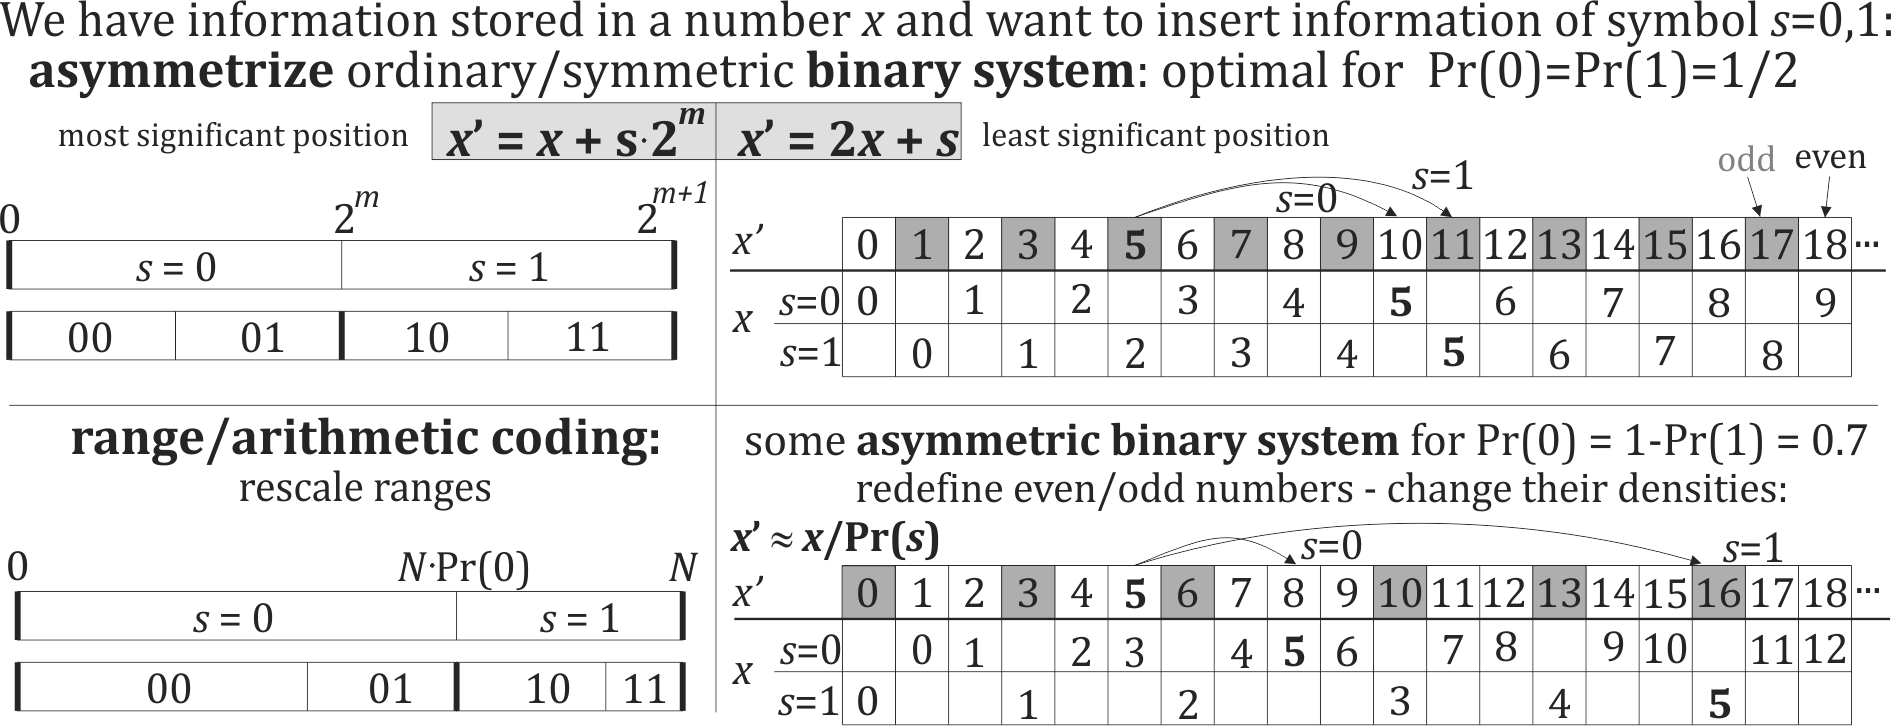 Two ways to asymmetrize binary numeral system. Having some information stored in a natural number